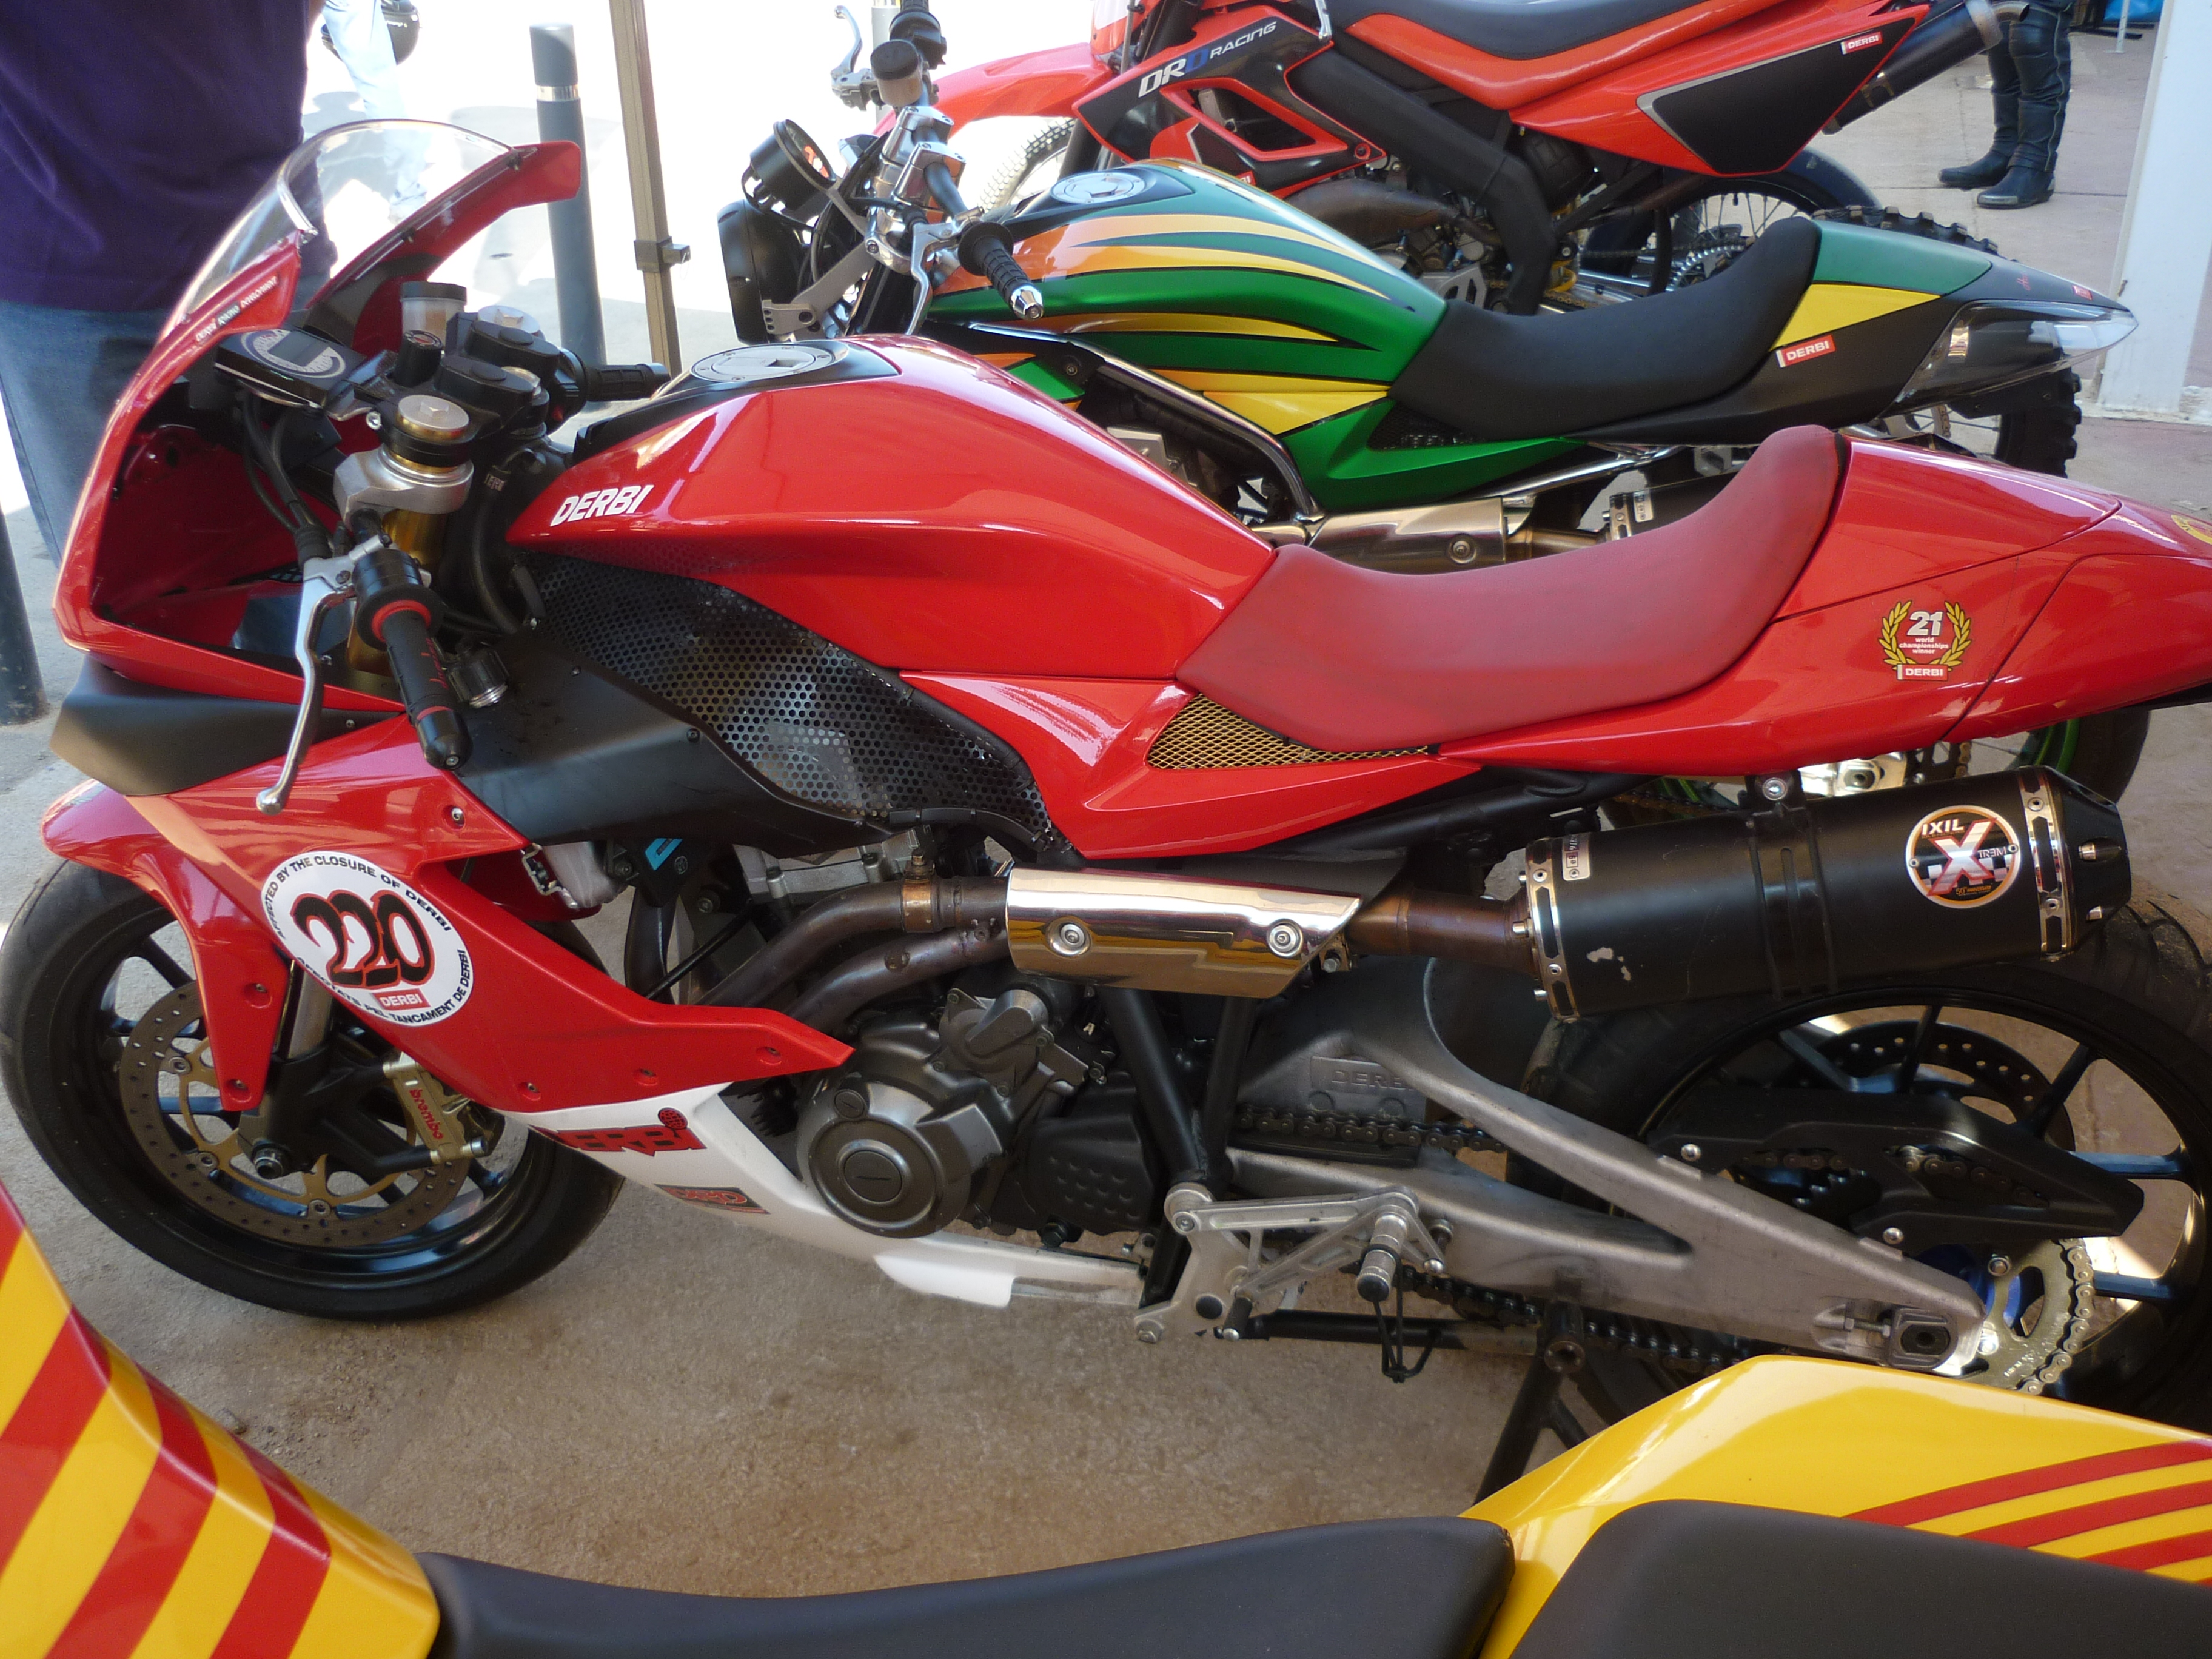 2009 Derbi Mulhacen Cafe 125 #6